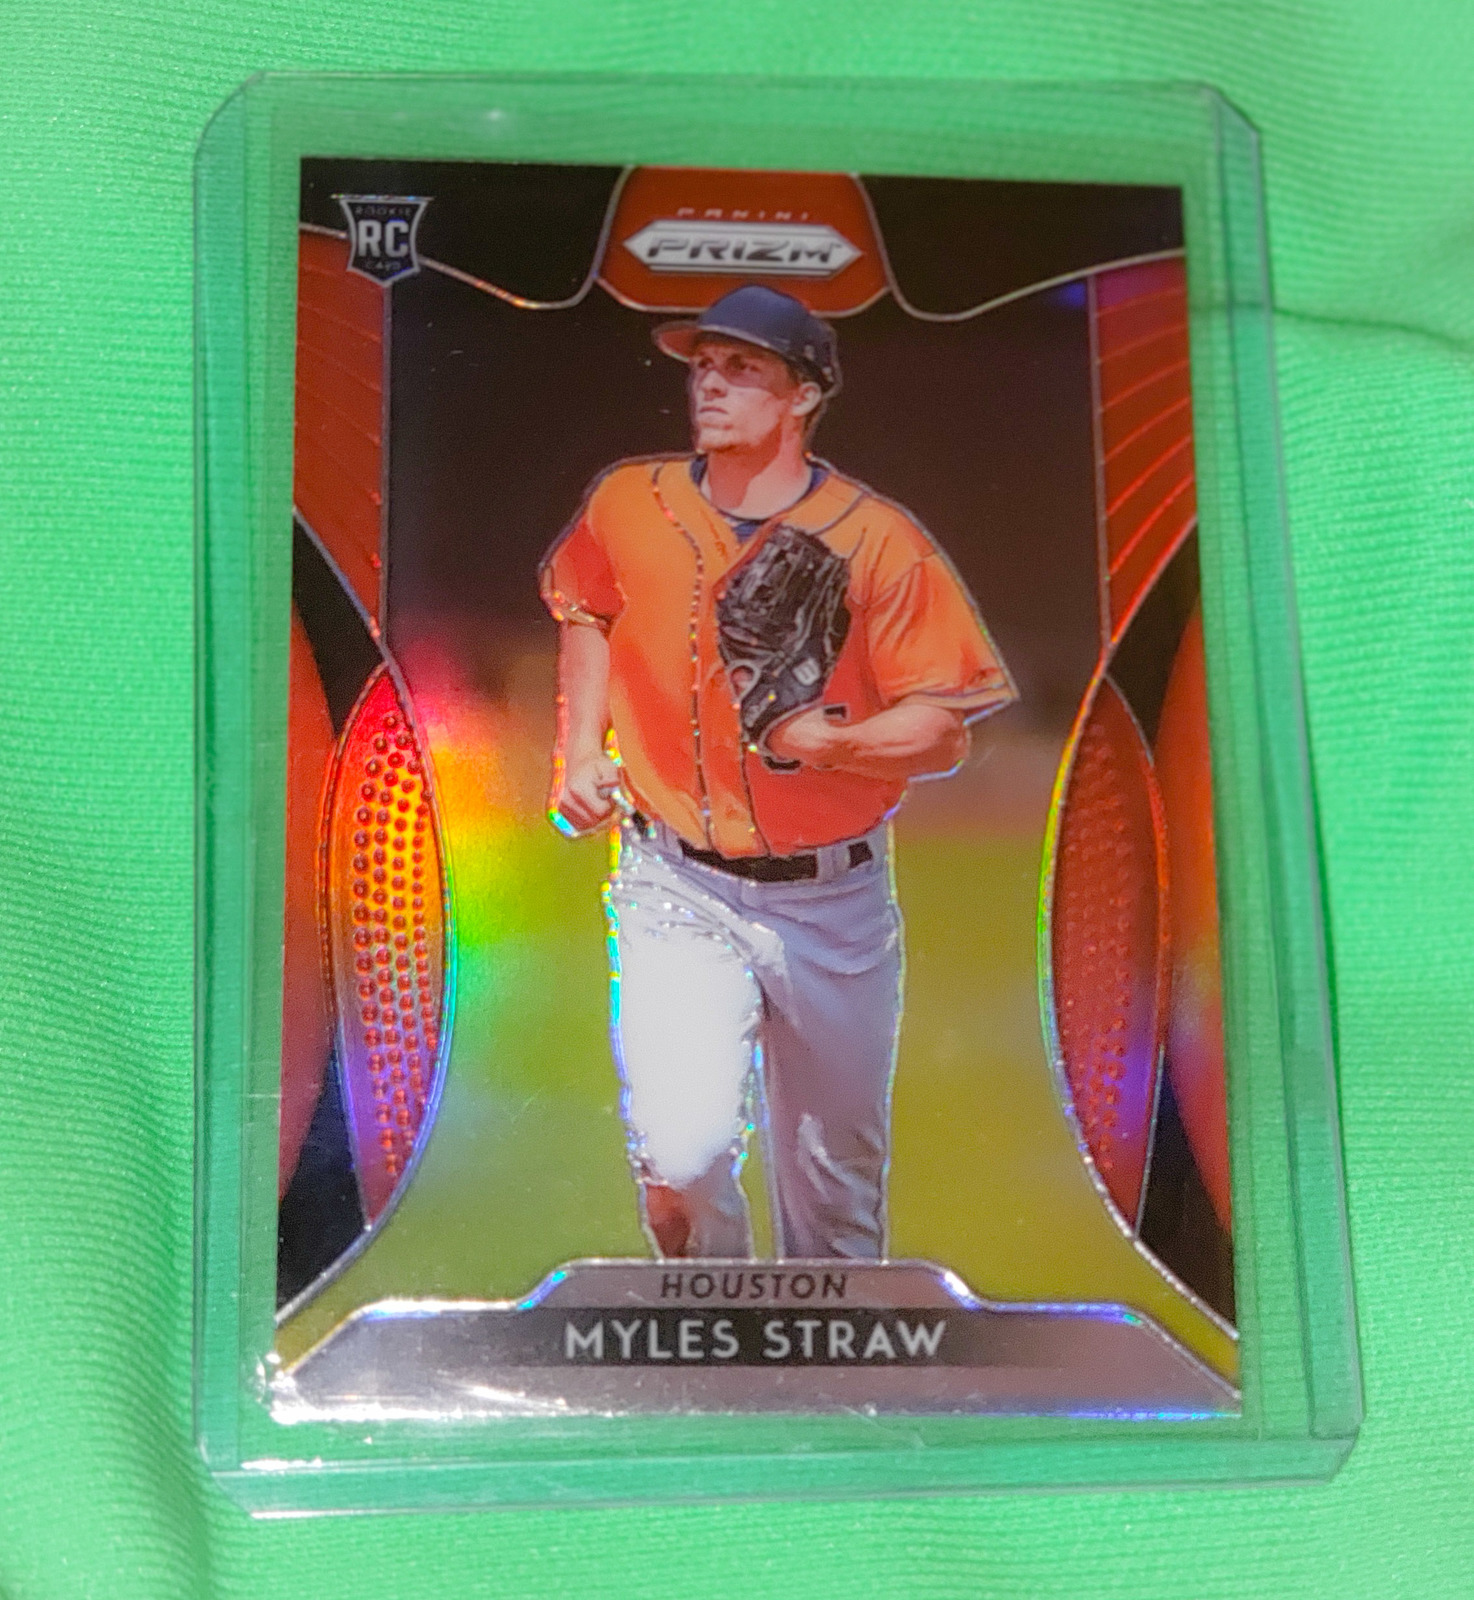 MLB MYLES STRAW BOSS AND RED SOX 2019 PANINI PRIZM REFRACTOR RC #96 MINT